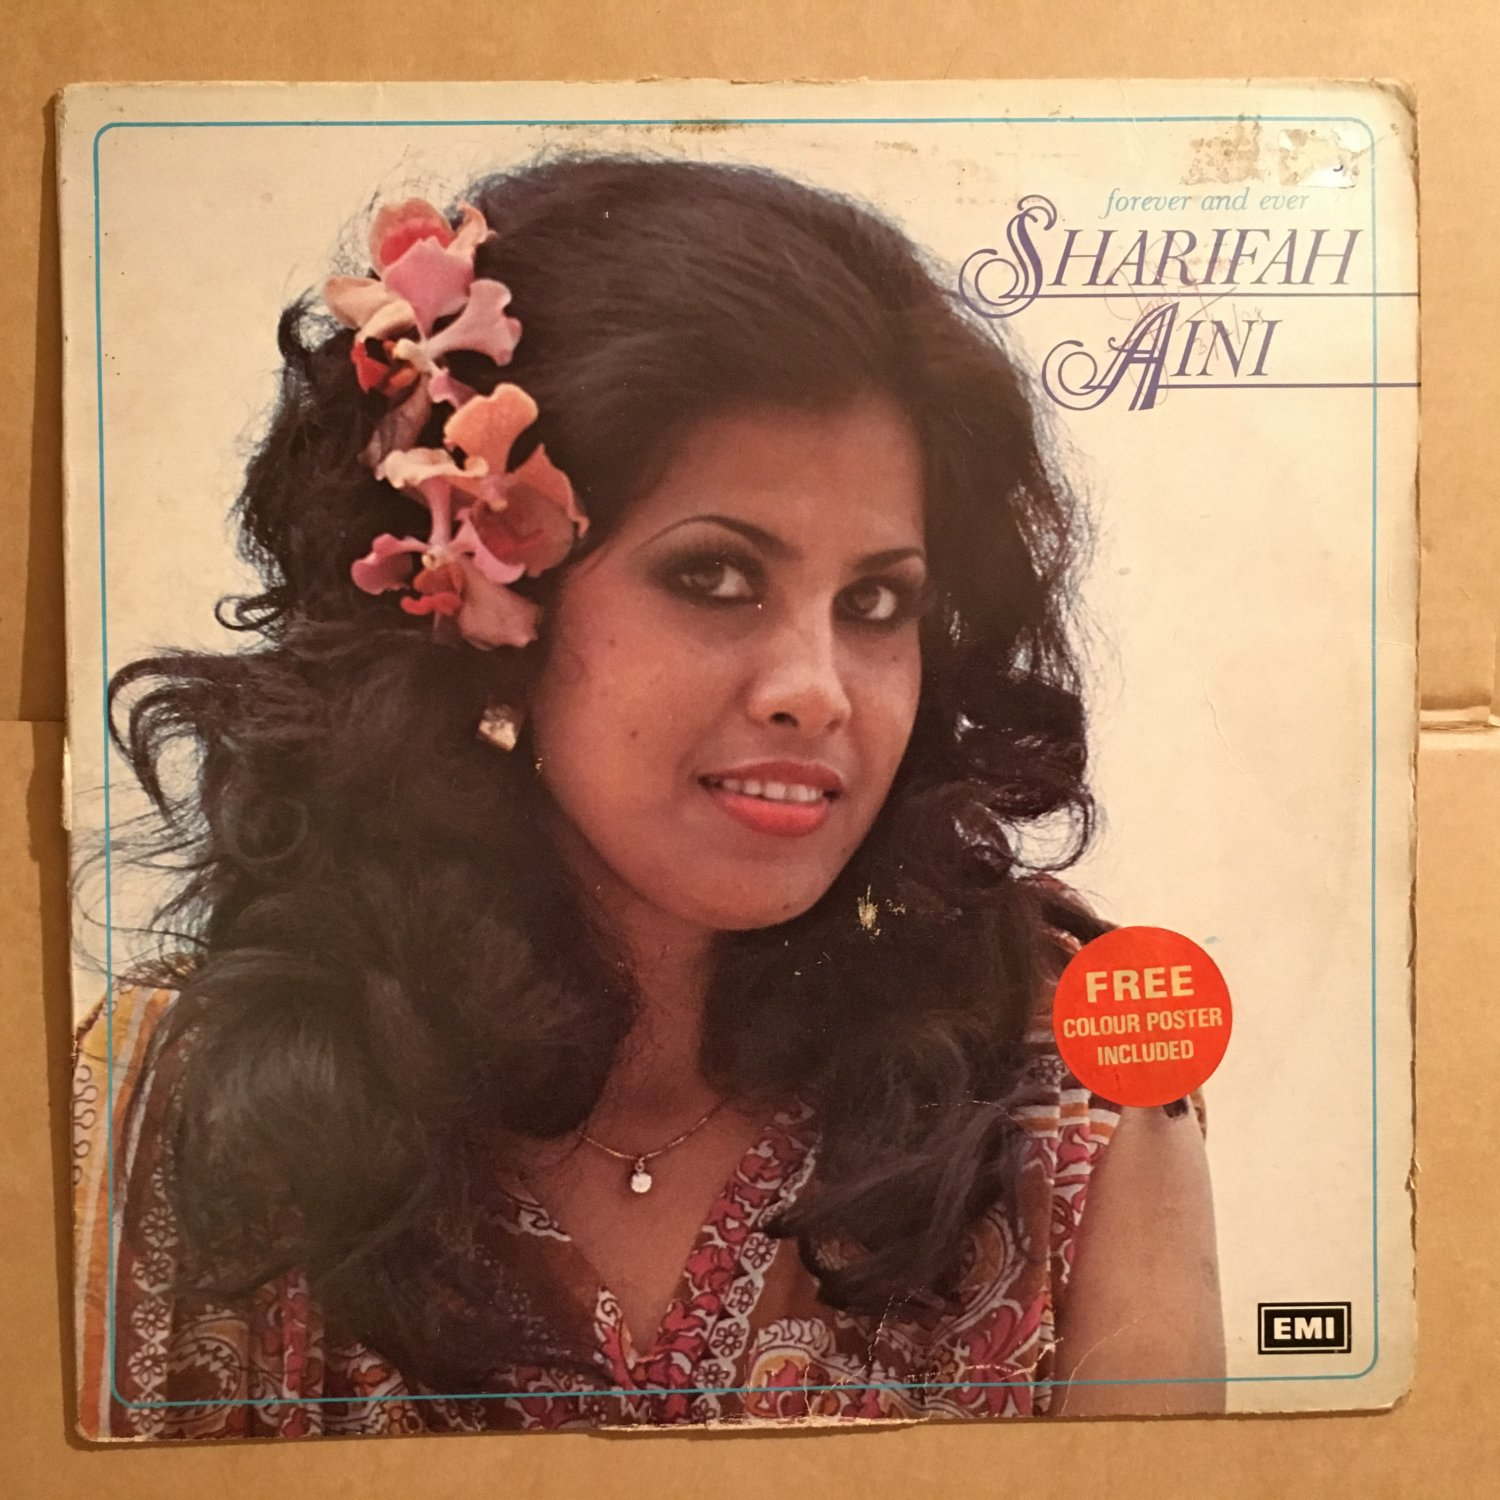 SHARIFAH AINI LP forever and ever MALAYSIA MODERN SOUL FUNK mp3 LISTEN